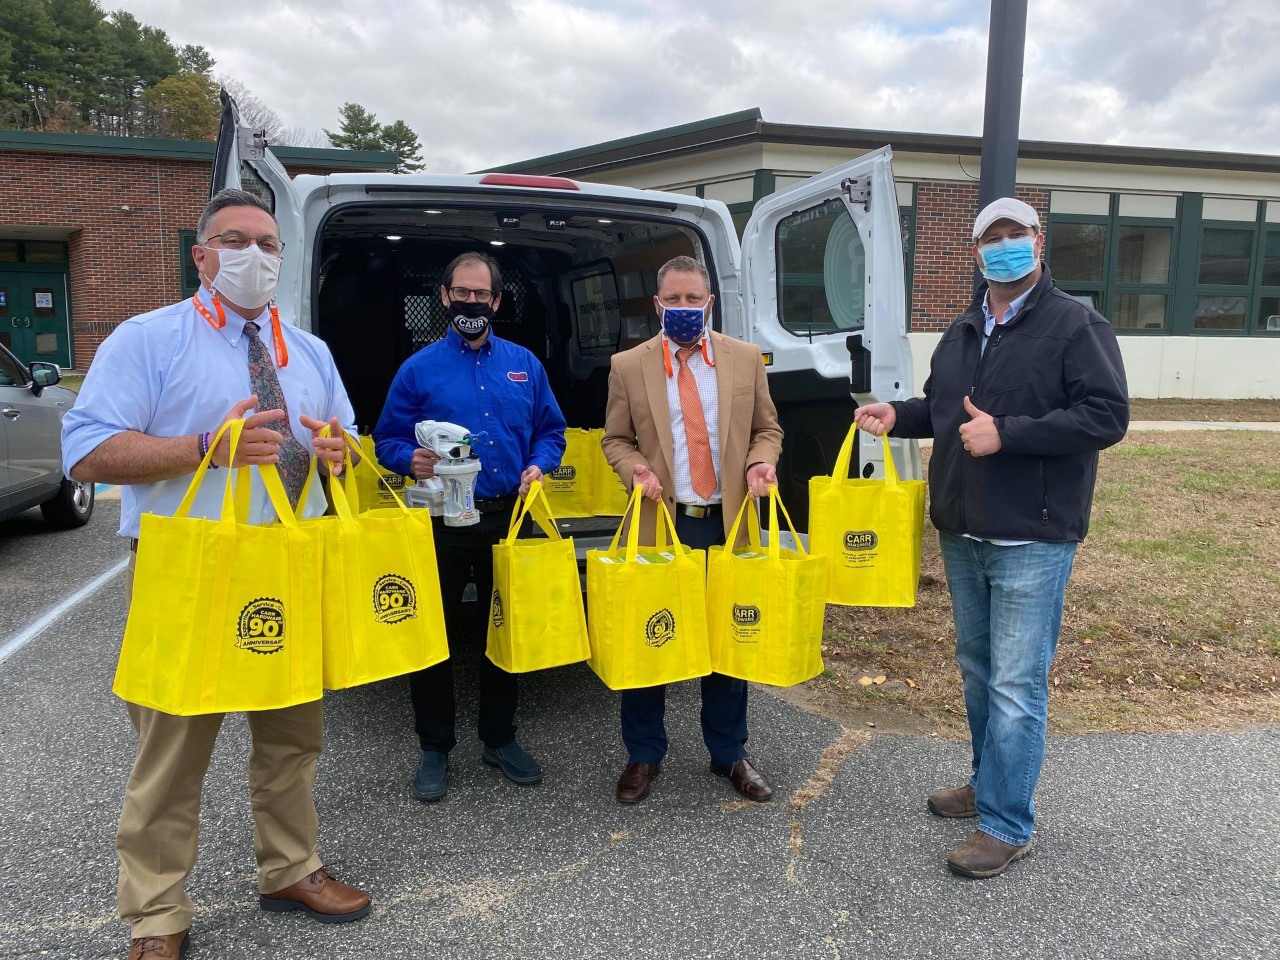 Bart Raser (second from left) of Carr Hardware donates PPE to Lee Public Schools.